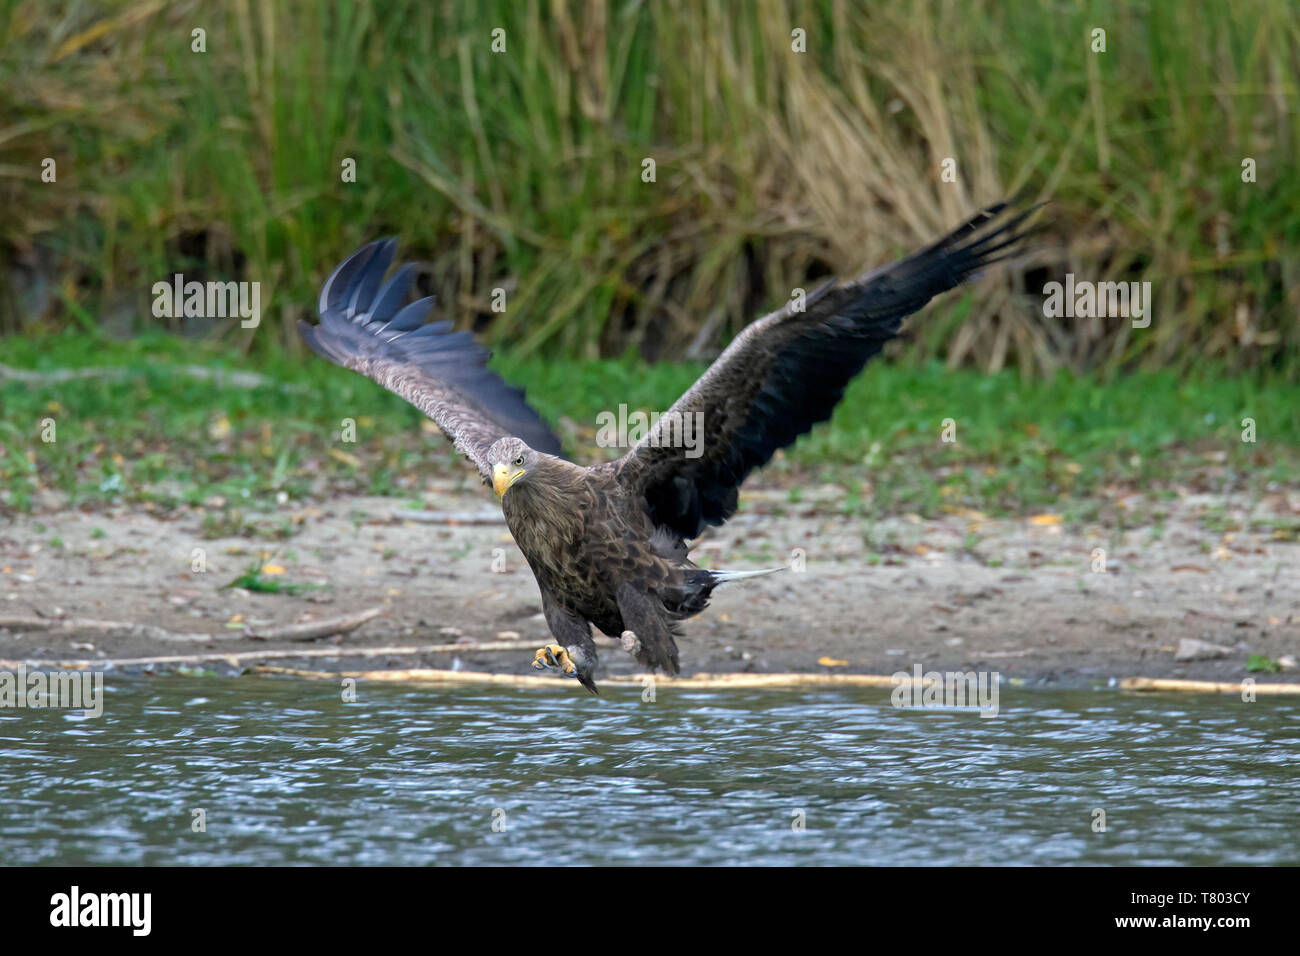 White-tailed eagle / sea eagle / erne (Haliaeetus albicilla) adult in flight catching fish in its talons from lake's water surface (part of sequence) Stock Photo